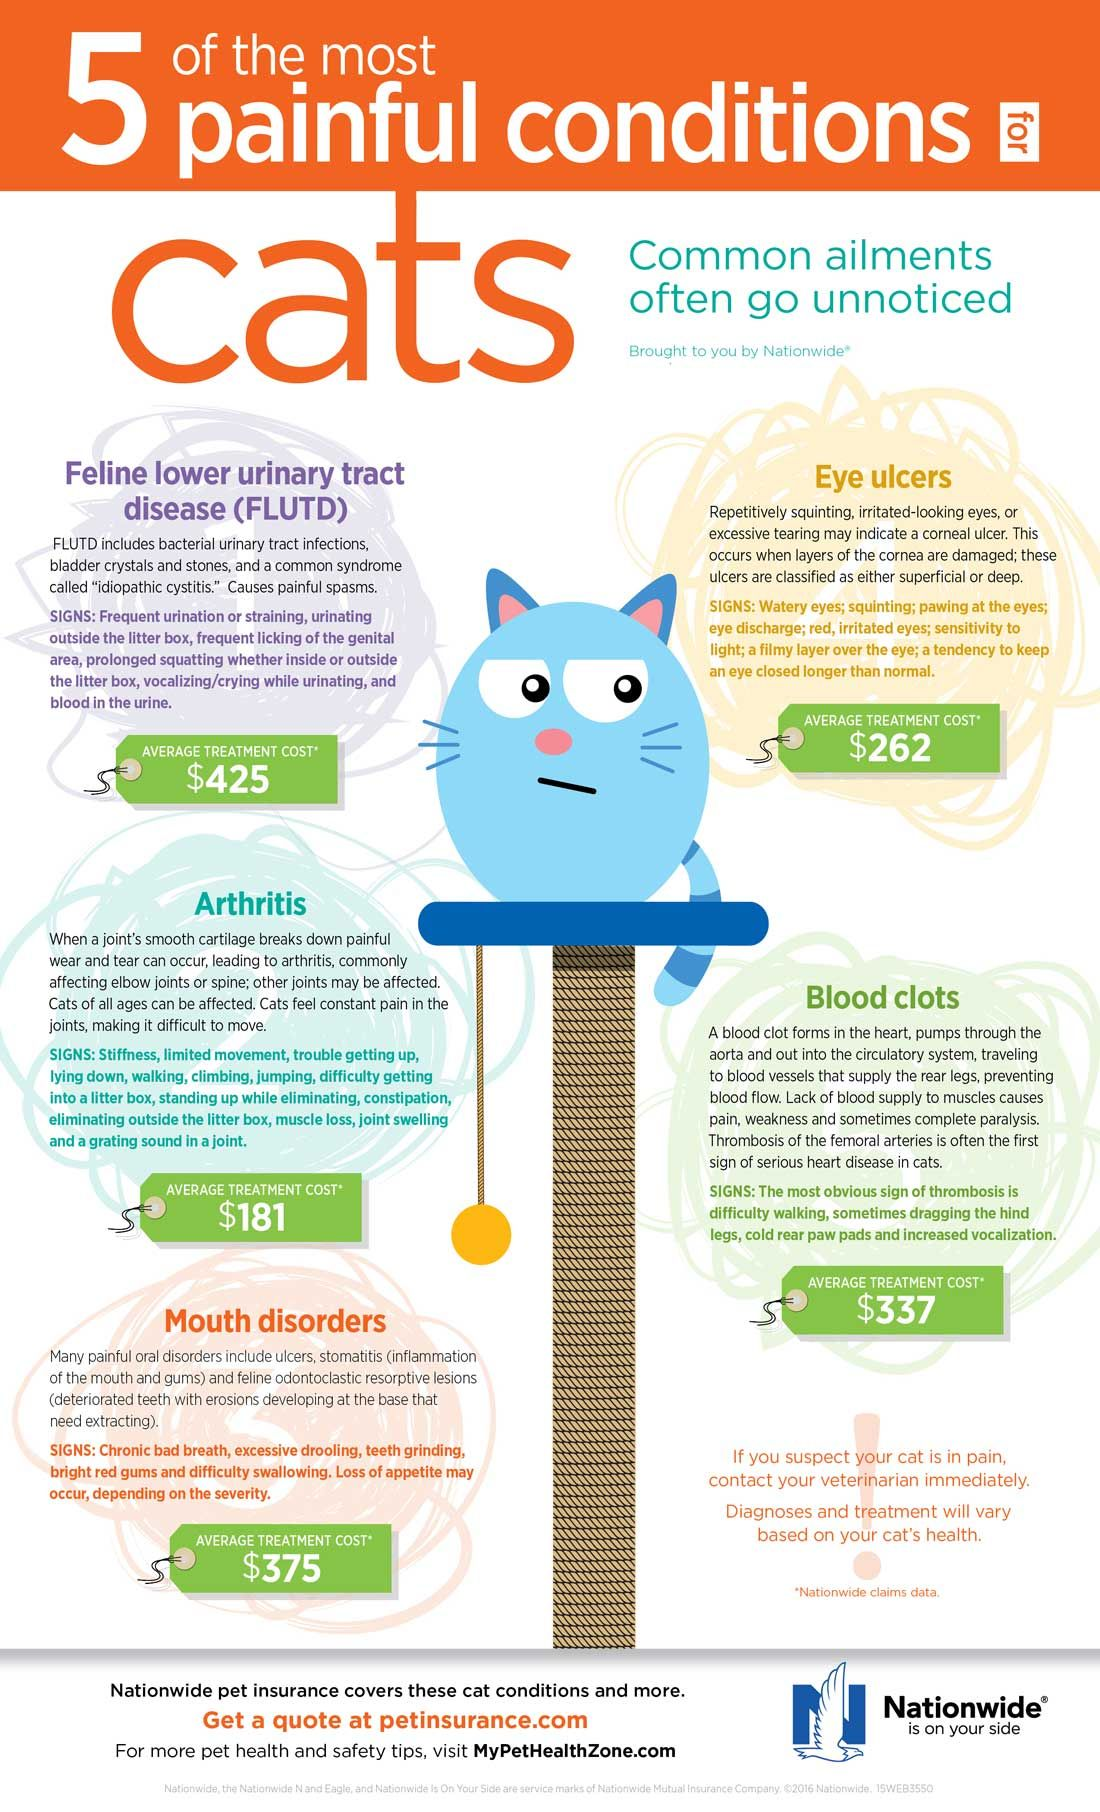 5 Of The Most Painful Conditions For Cats In 2020 Cat Health Care Cat Infographic Cat Health